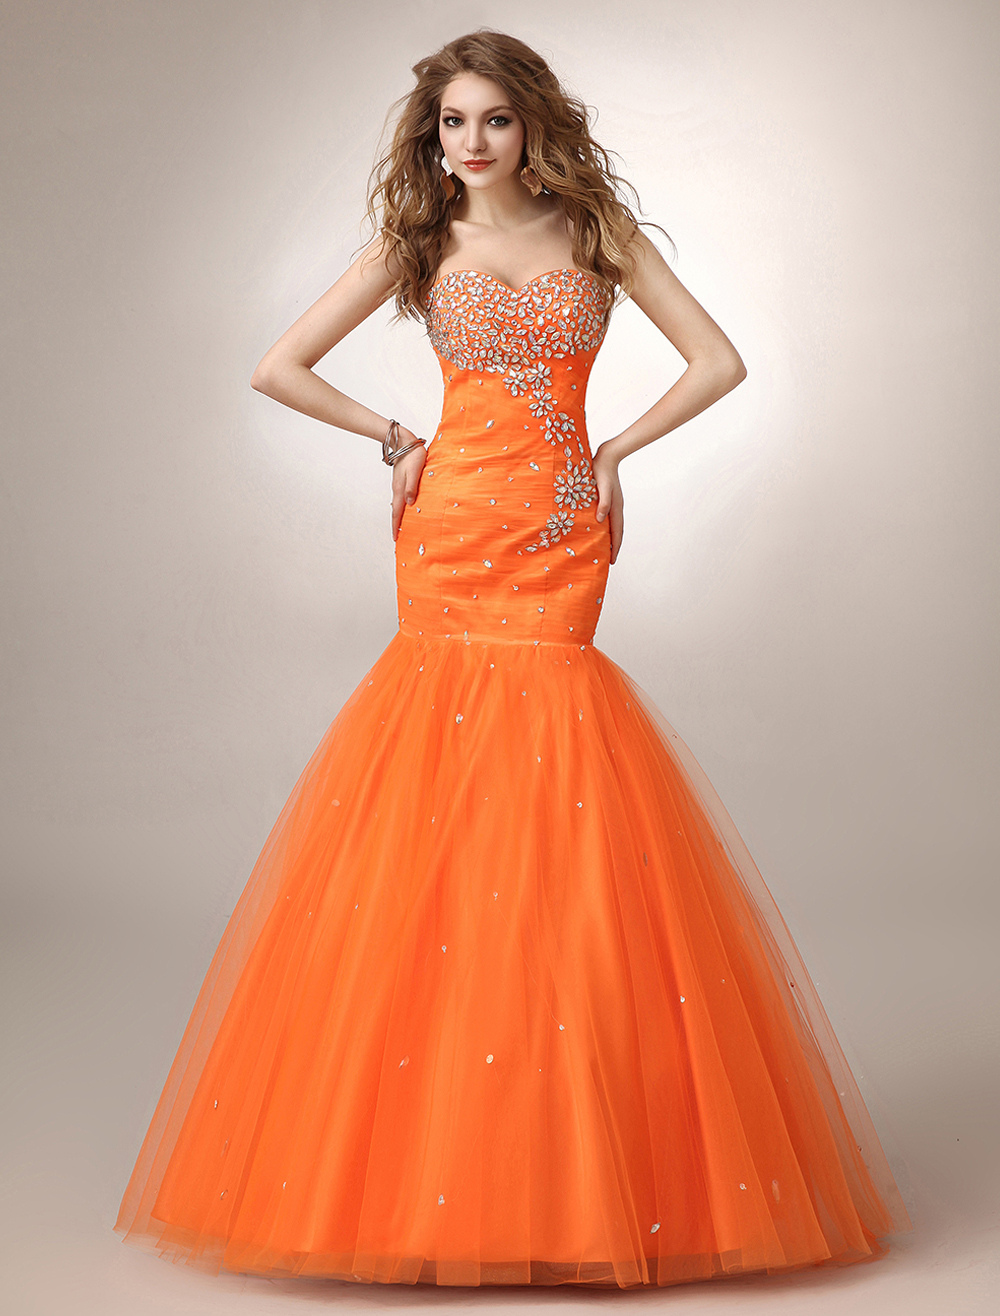 Mermaid Orange Rhinestone Tulle Prom Dress with Sweetheart Neck